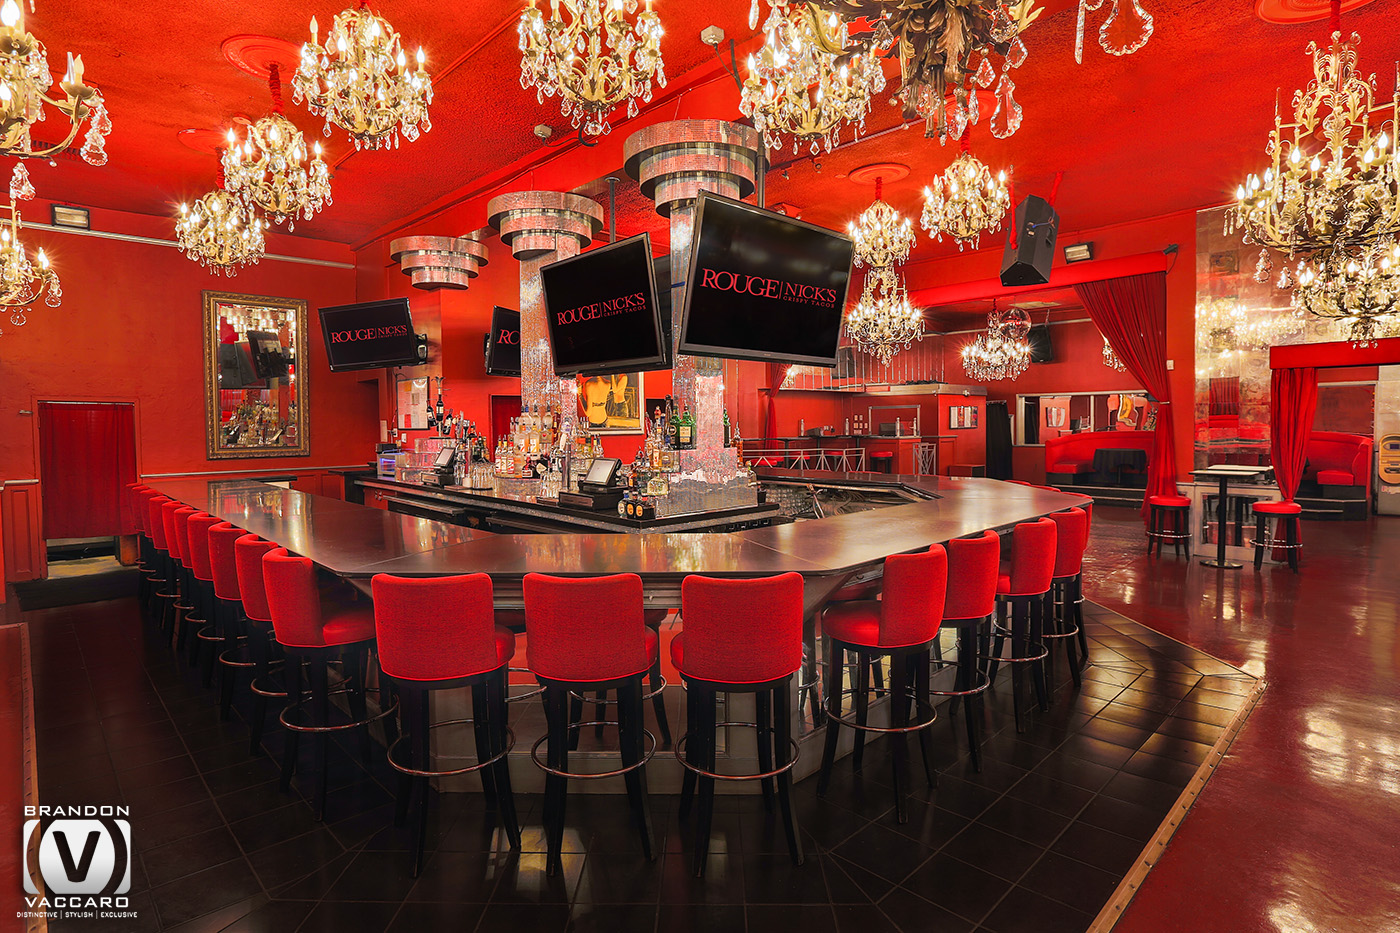 architecture-rouge-nightclub-lounge-nicks-crispy-tacos-san-francisco-commercial-photography-.jpg